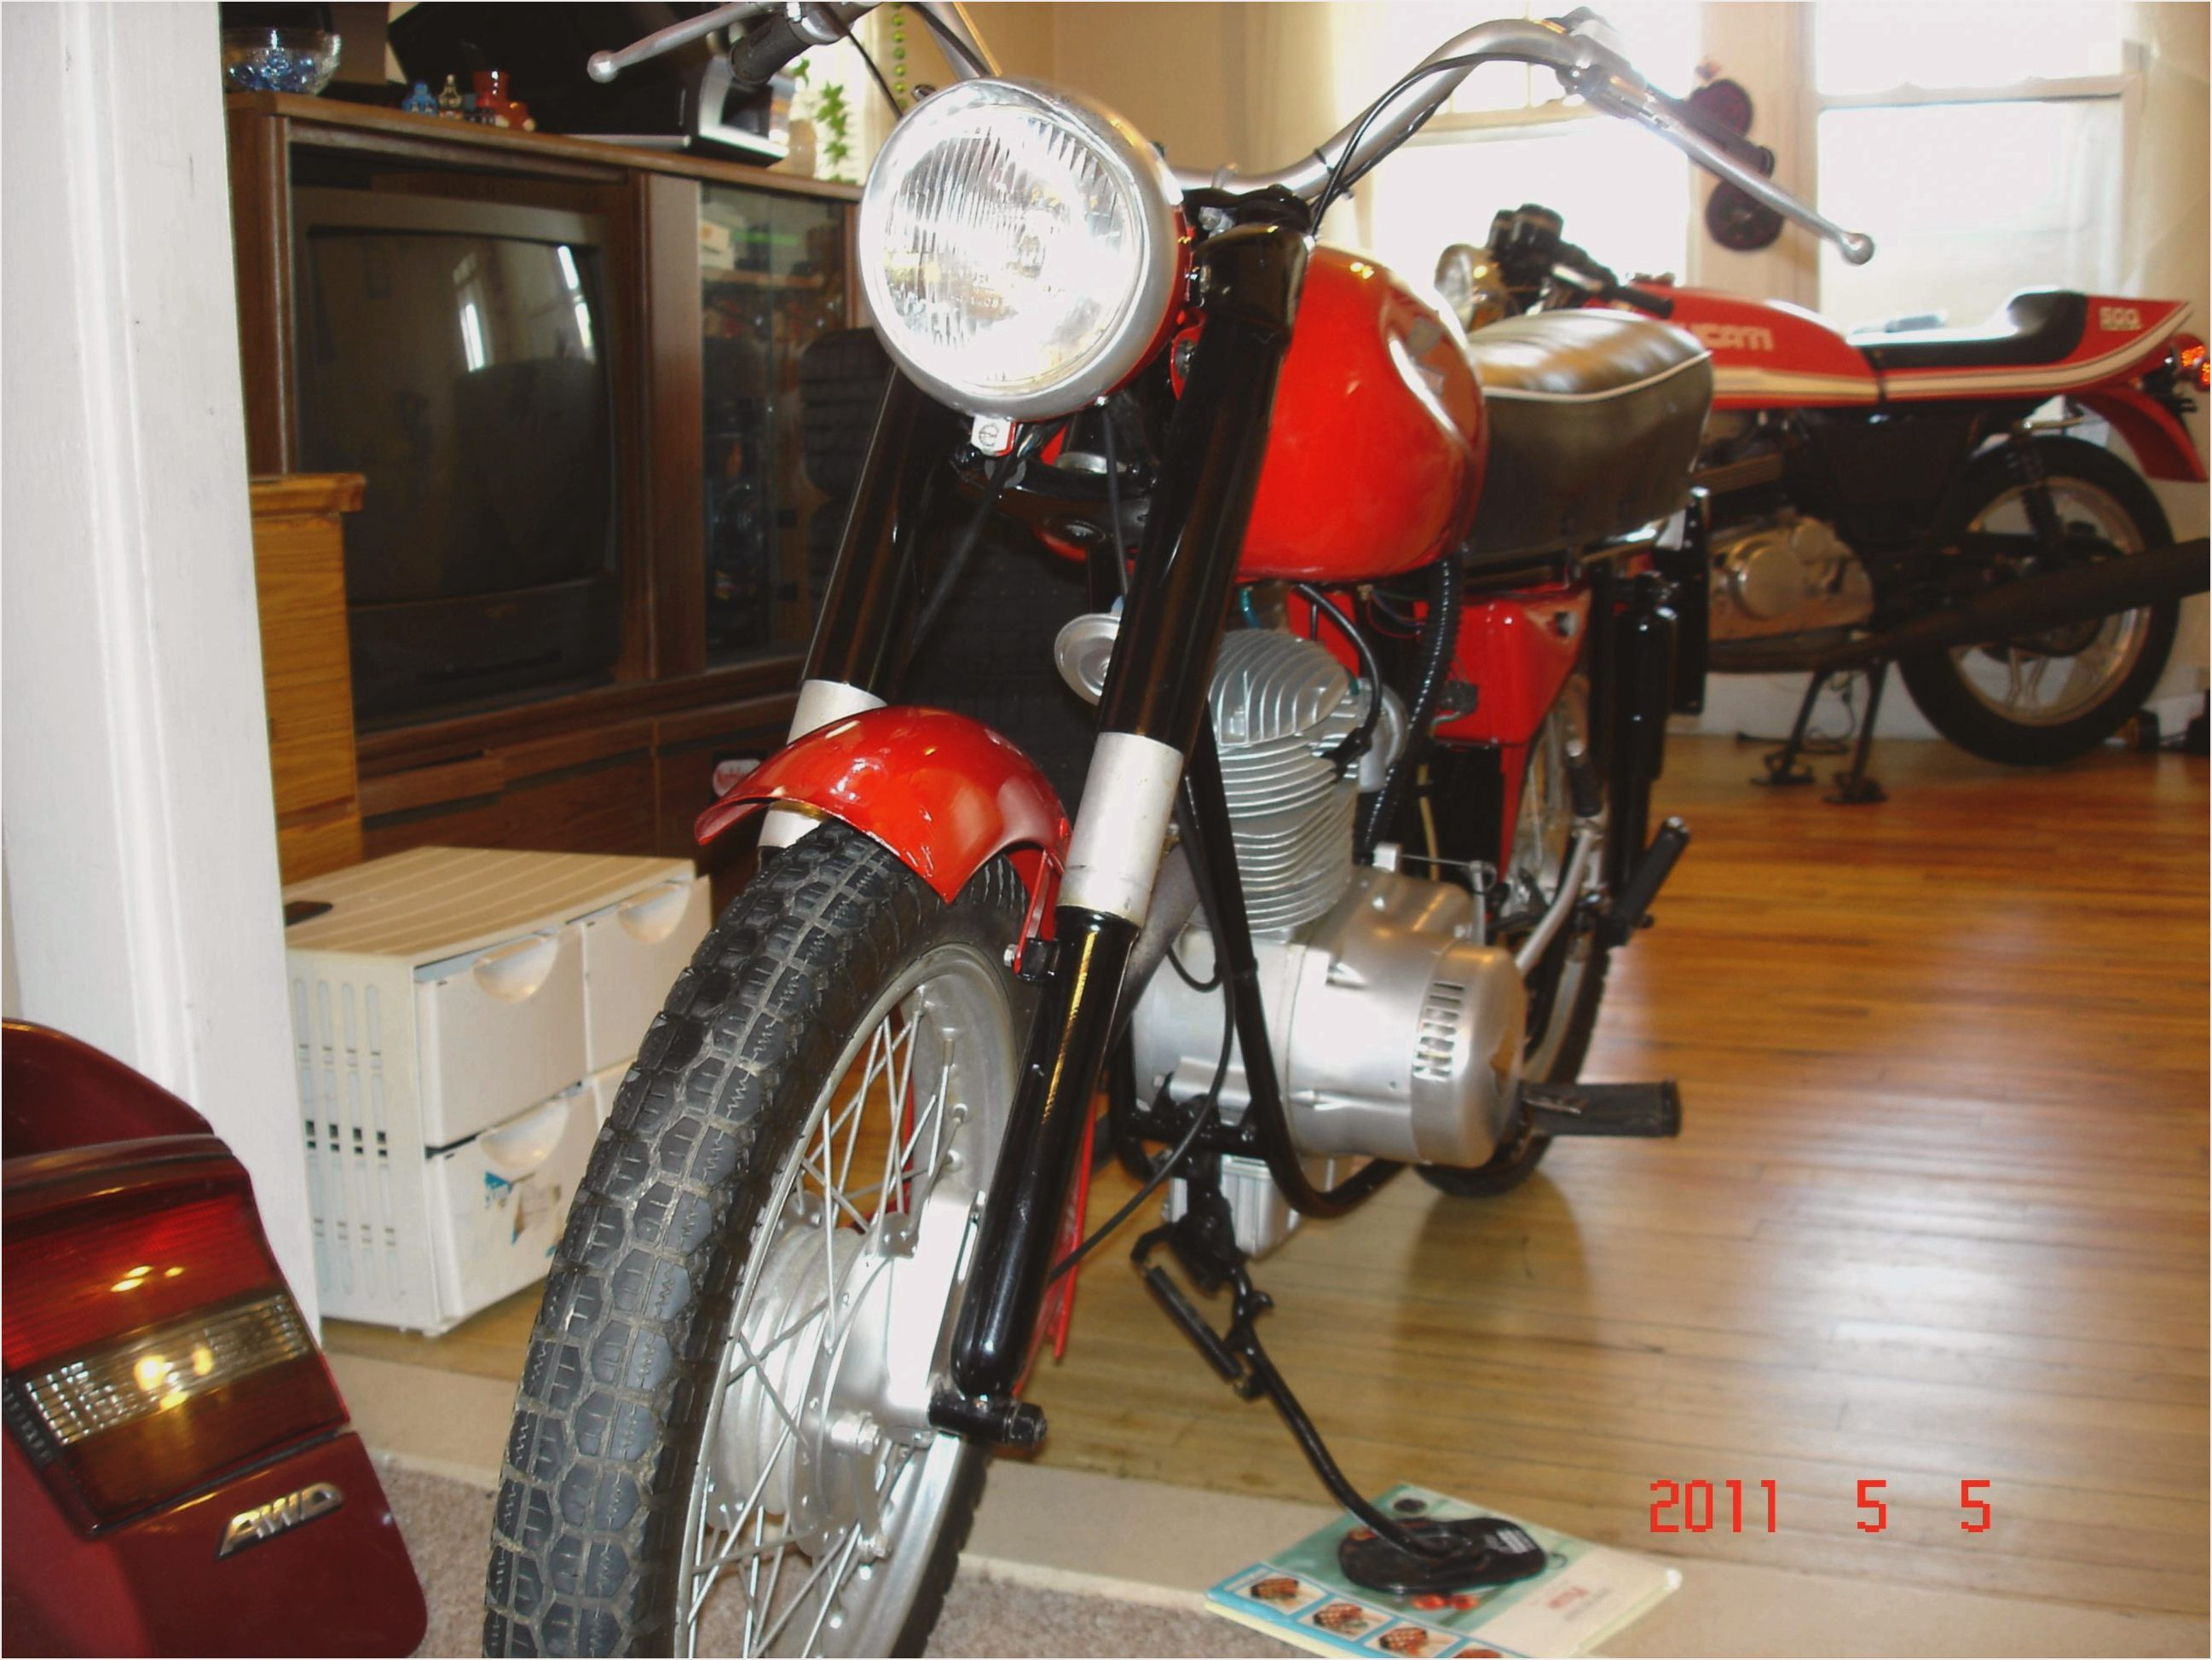 Cagiva SX 350 1979 images #66614